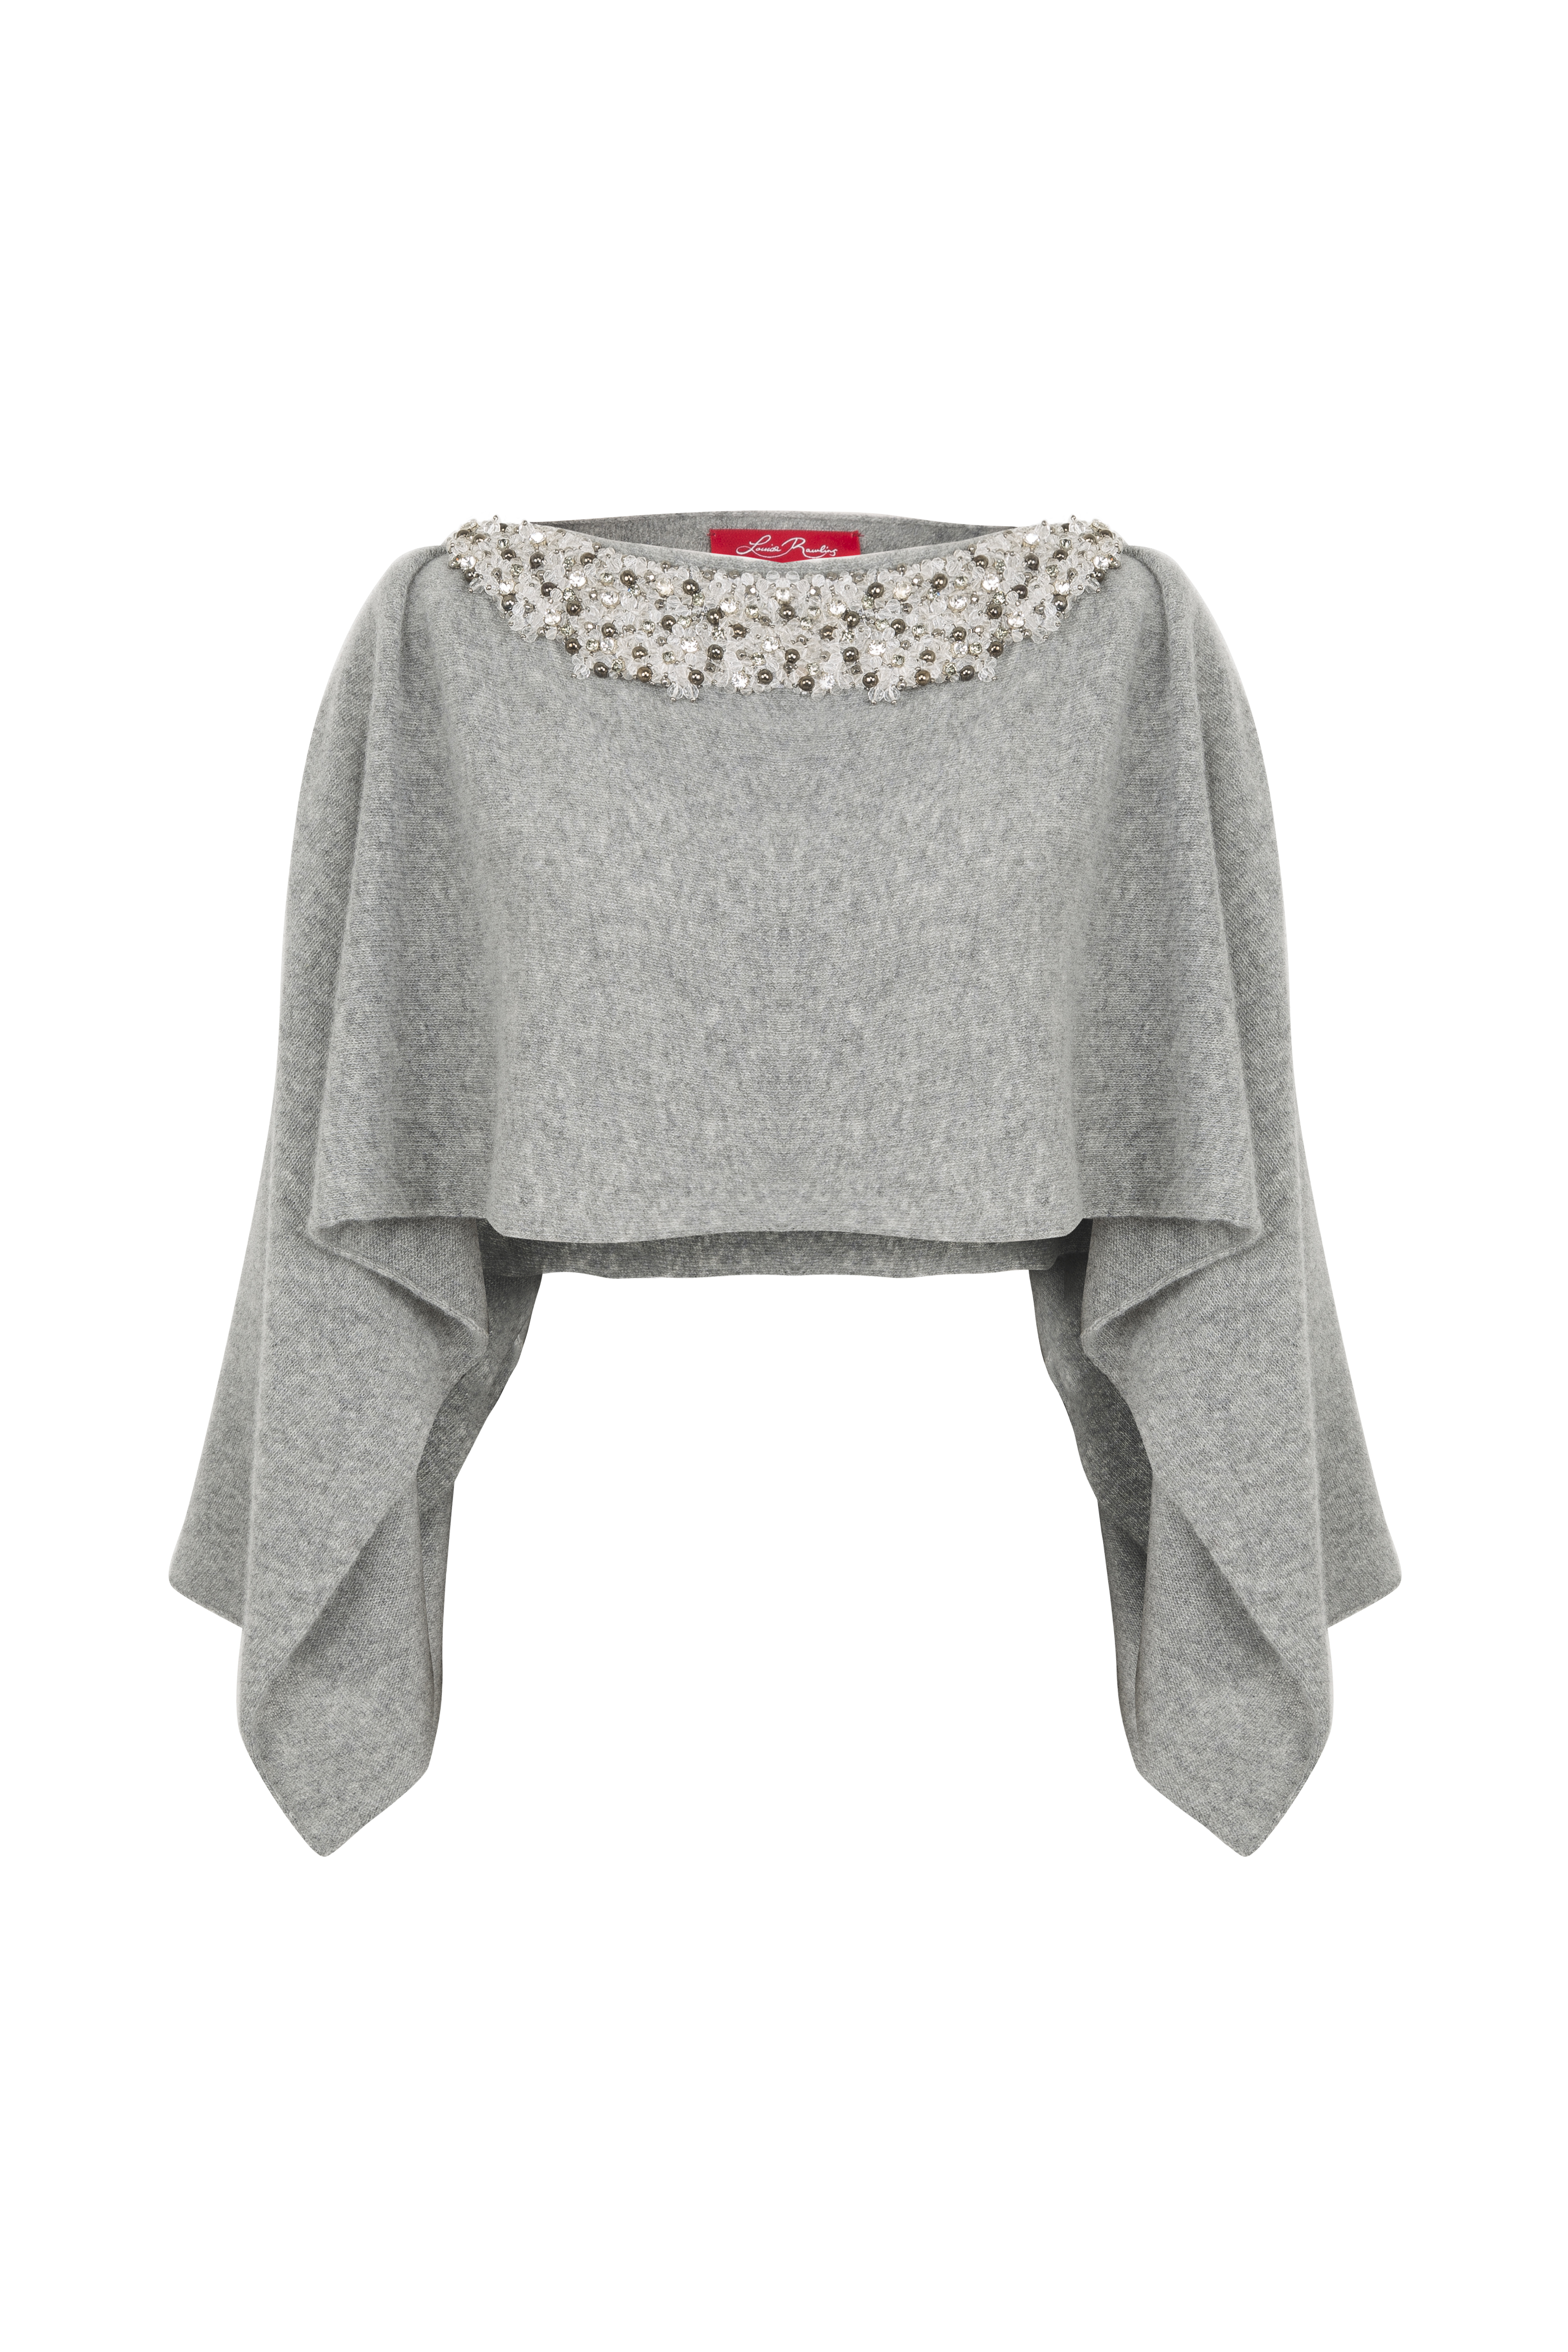 Louise Rawlins Poncho with Embellished Neckline in Flannel Grey